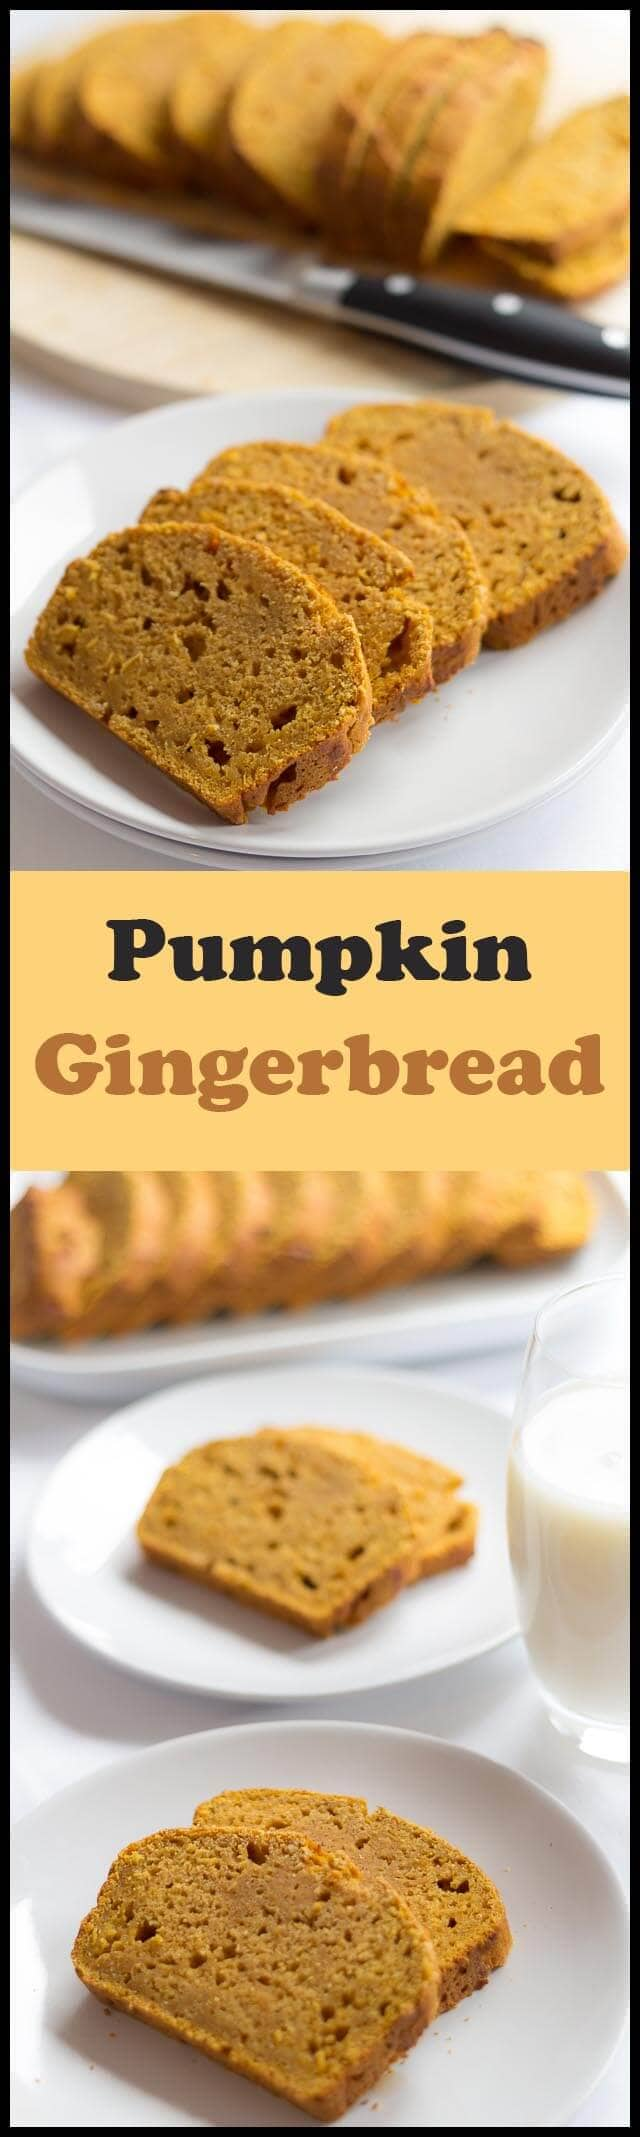 This pumpkin gingerbread is so delicious, you just wont be able to put it down. With an amazingly moist texture, and a fantastic zingy ginger hit, it's hard to believe that something so tasty is only 172 calories per slice and low in fat too!